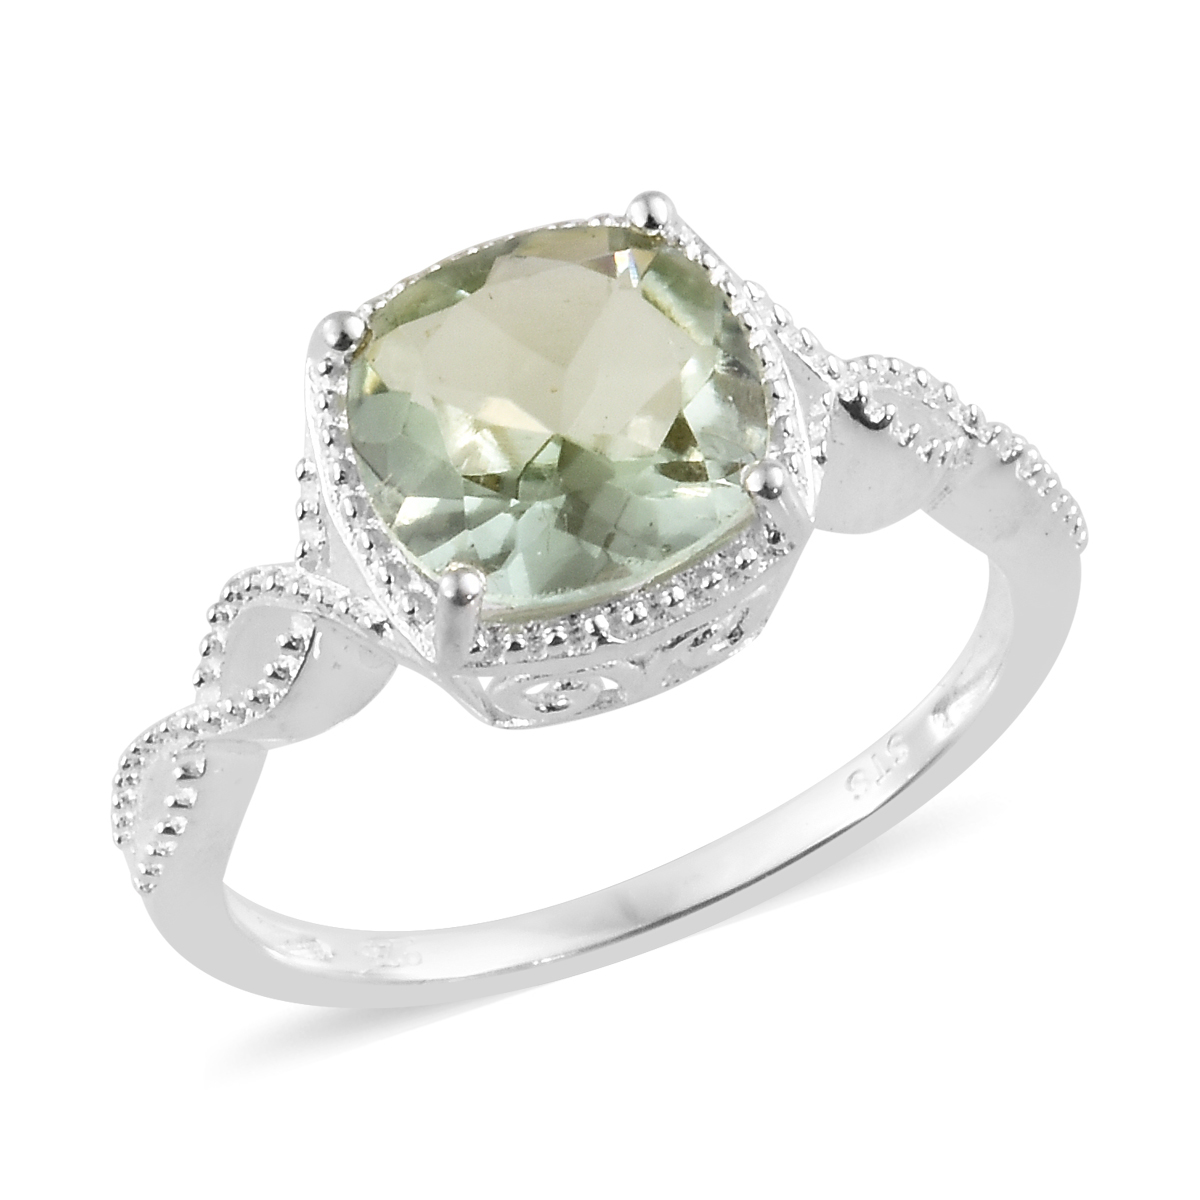 213b140cd Green Amethyst Sterling Silver Ring (Size 6.0) TGW 2.70 cts. | Solitaire |  Rings | Jewelry | online-store | Shop LC